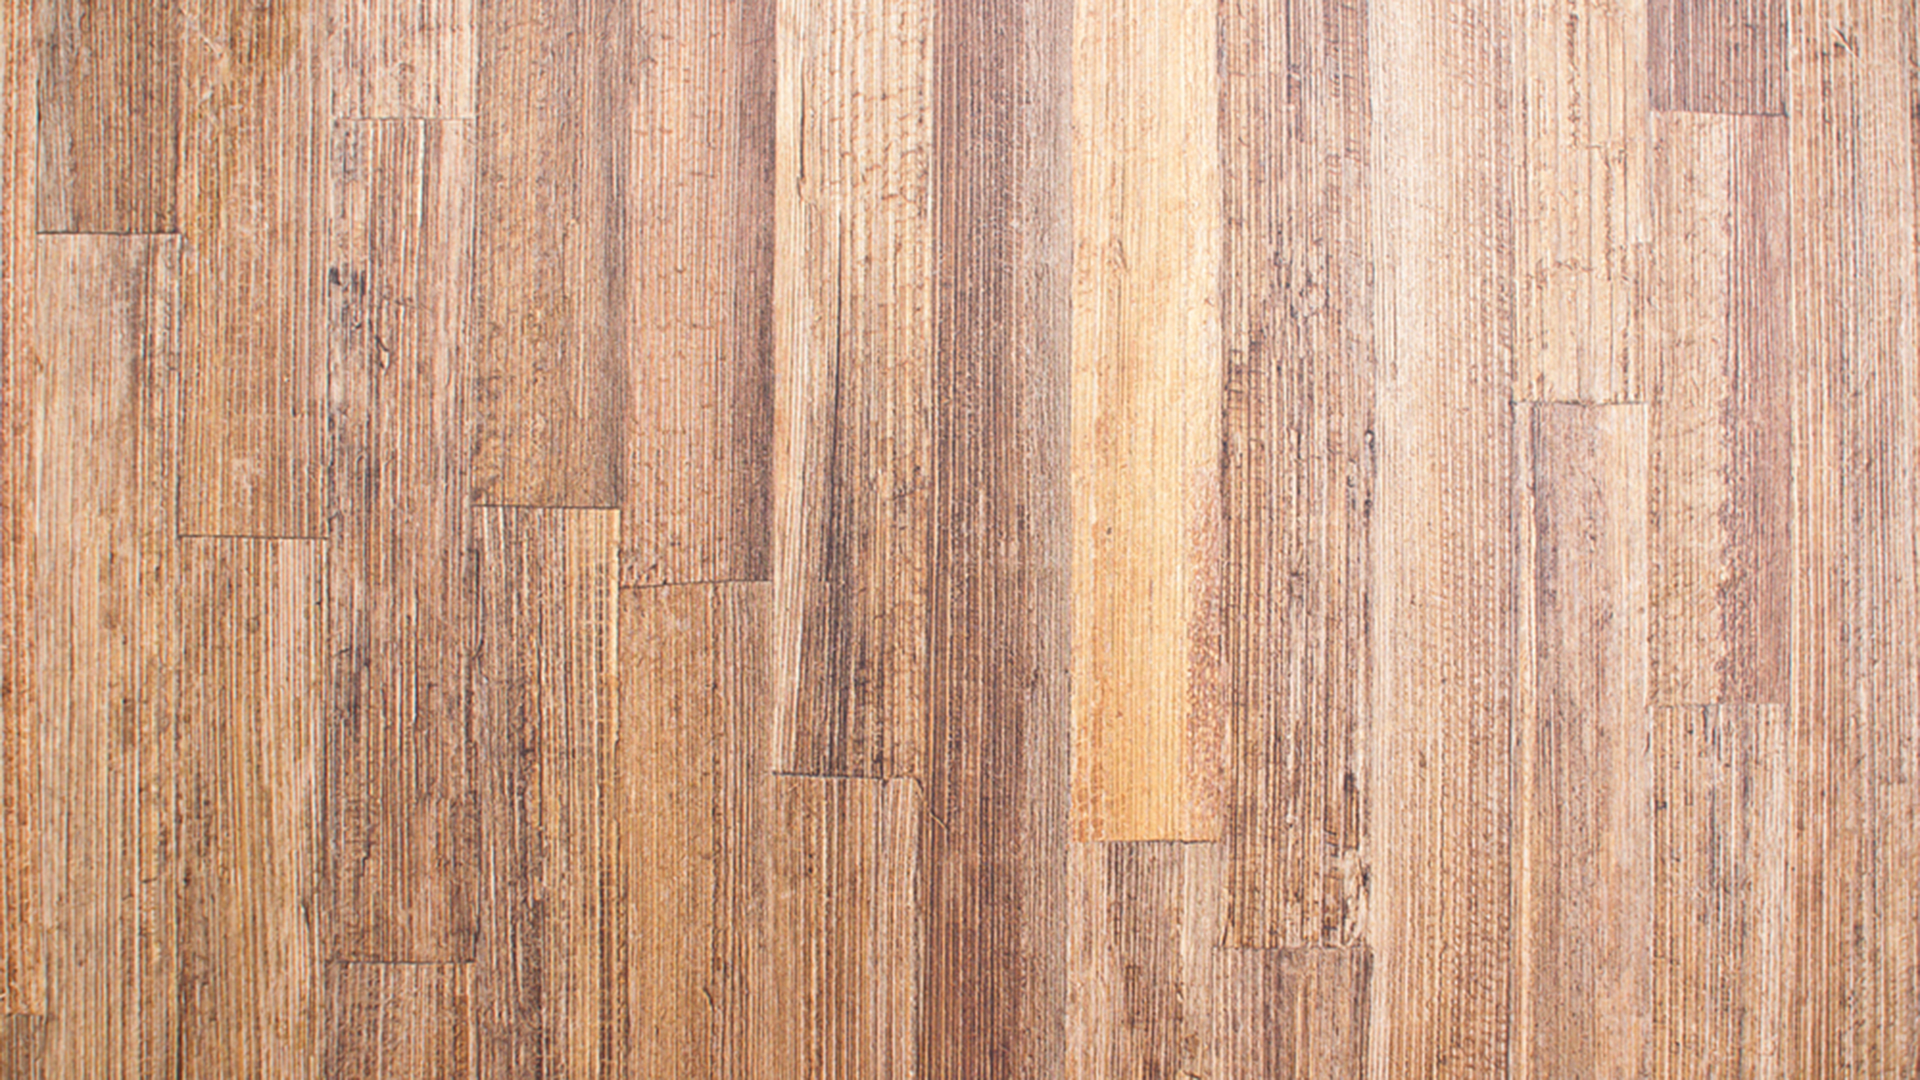 How Can I Get Rid Of Scratches On Wood Floor Answers To